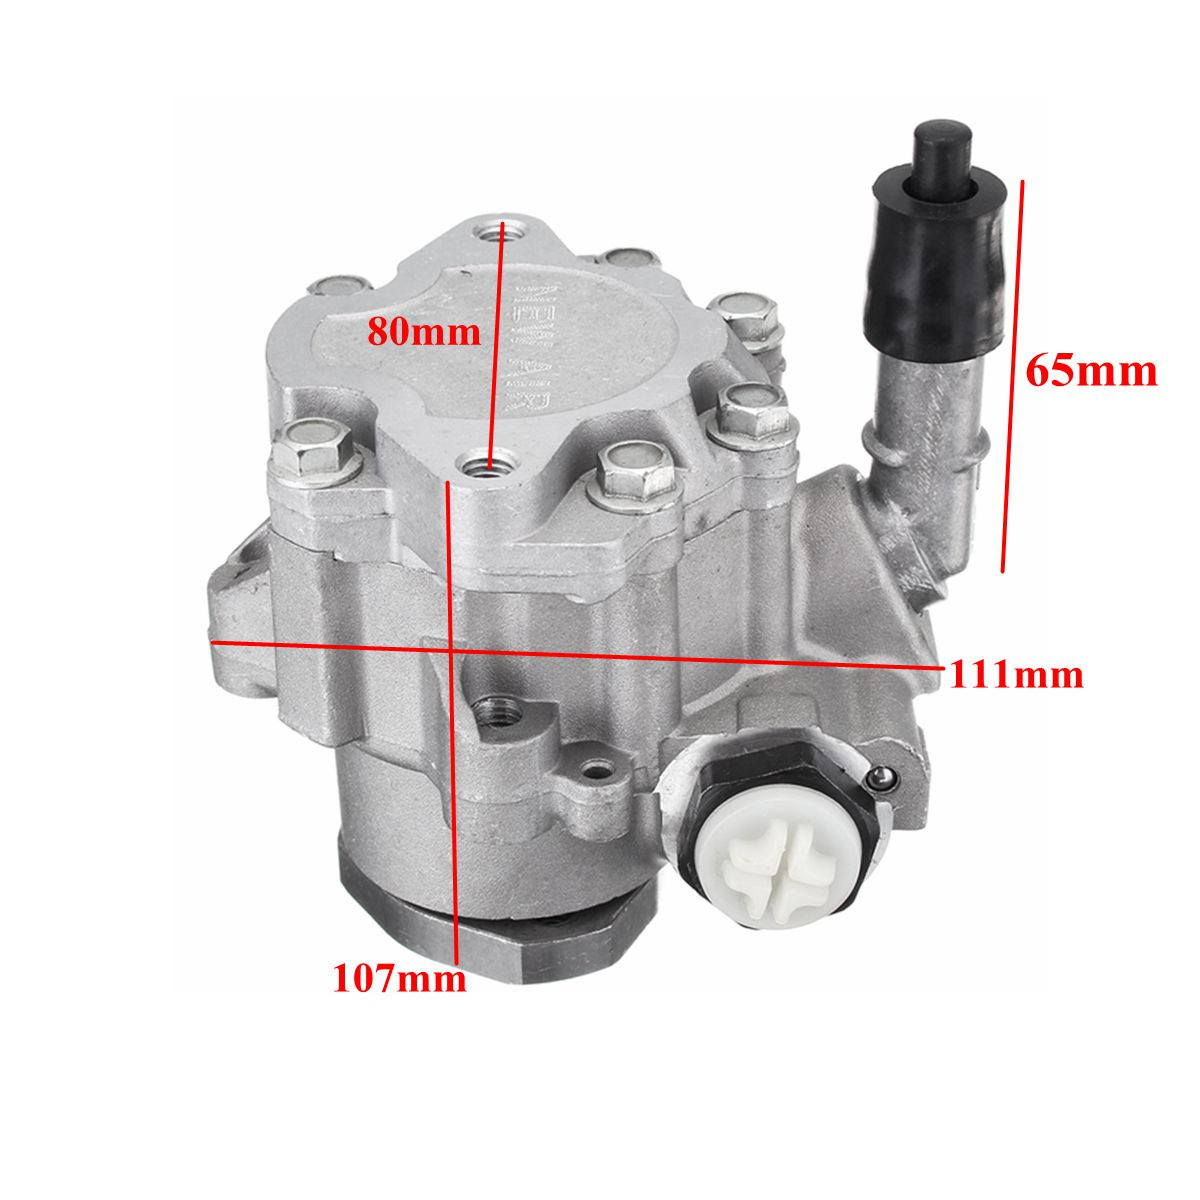 us $59 75 12% off power steering pump engine for bmw e46 3 series 325i 328i 32411094965 new in power steering pumps \u0026 parts from automobiles \u0026Location 2001 Bmw X5 Jeep Grand Wagoneer Power Steering Pump Bmw 325i #13